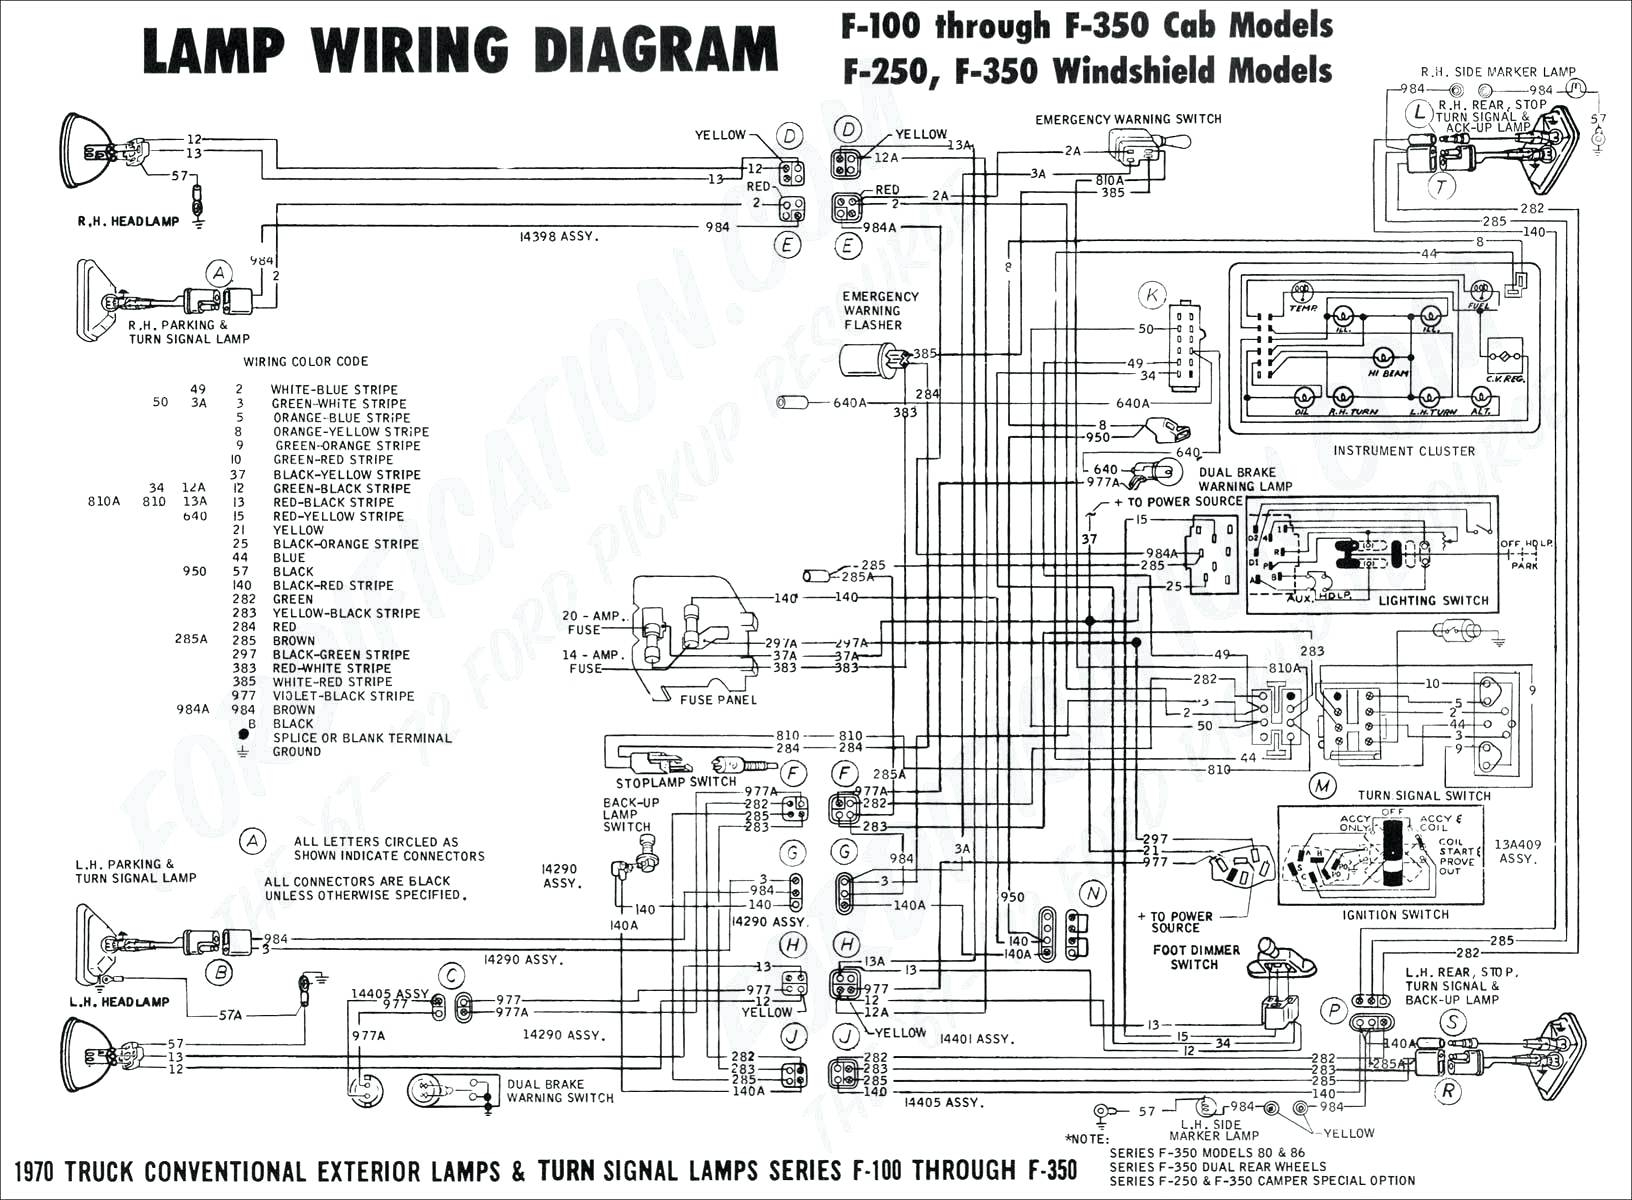 2003 Dodge 2500 Trailer Wiring | Wiring Diagram on